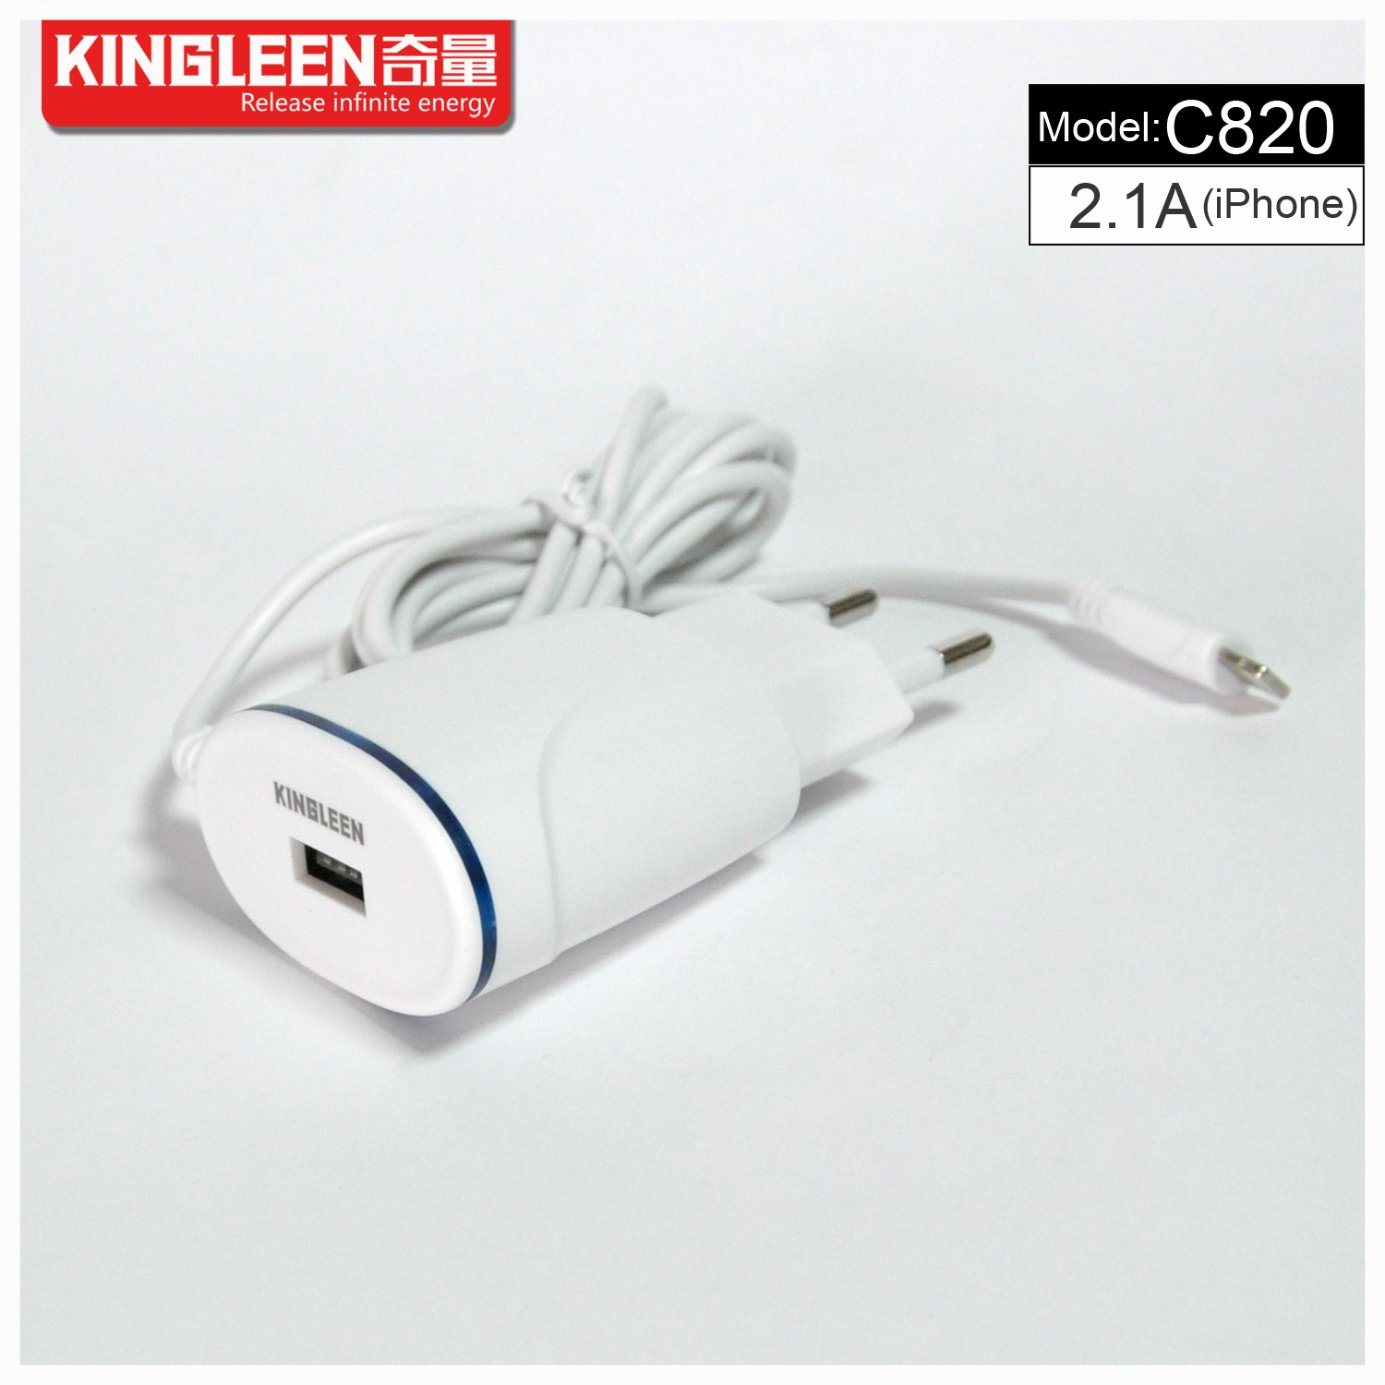 Kingleen ′c820 Intellgent Direct Charger for iPhone 5V-2.1A High Quality Charger Export to Europe